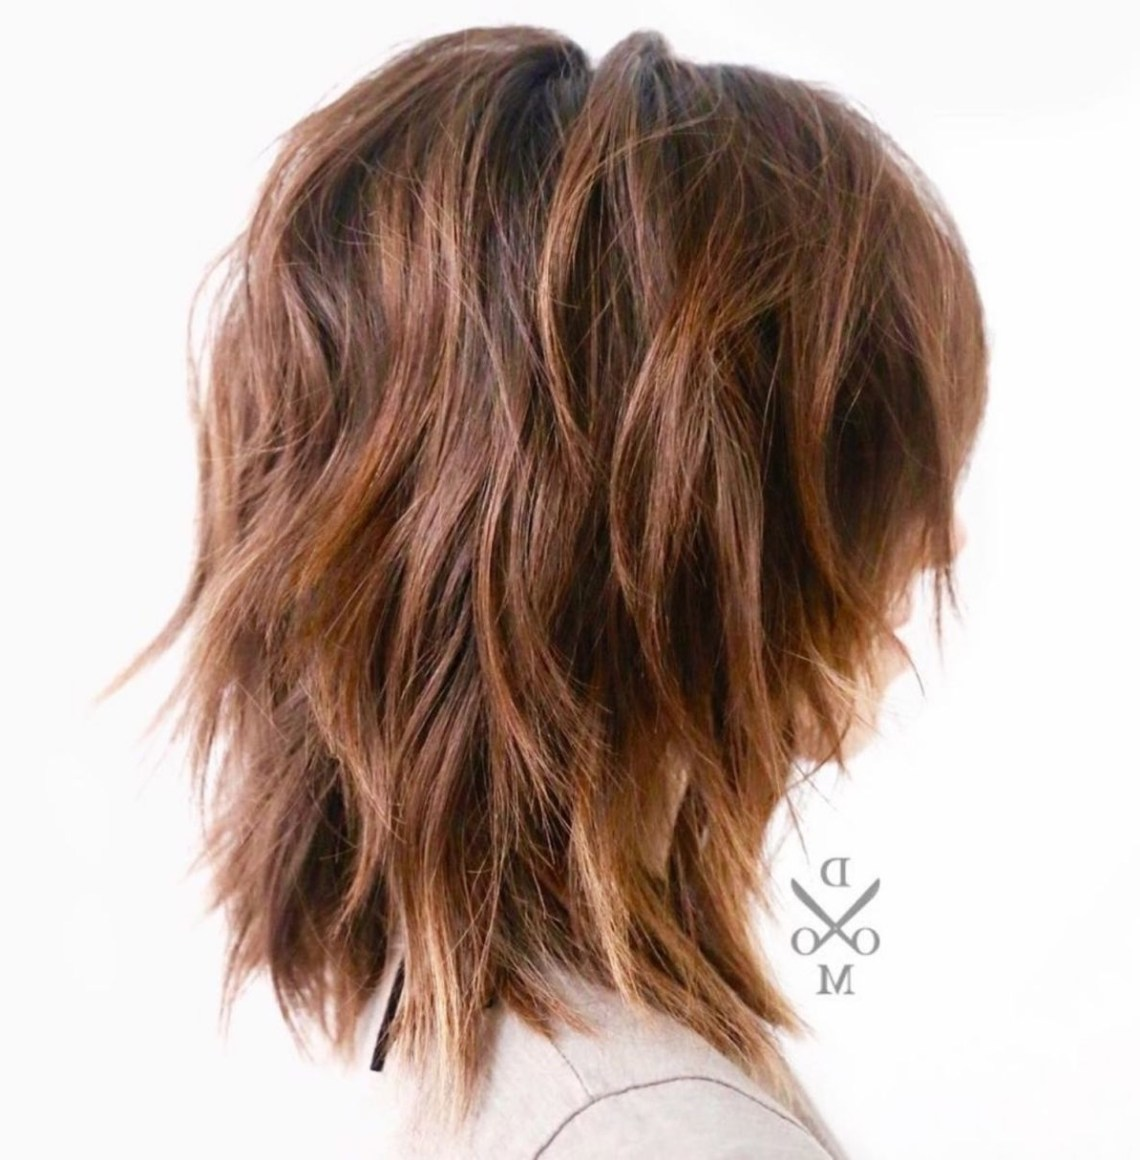 Medium Shaggy Layered Hairstyle For Thick Frizzy Hair Layered Low Maintenance Medium Length Hairstyles For Thick Hair